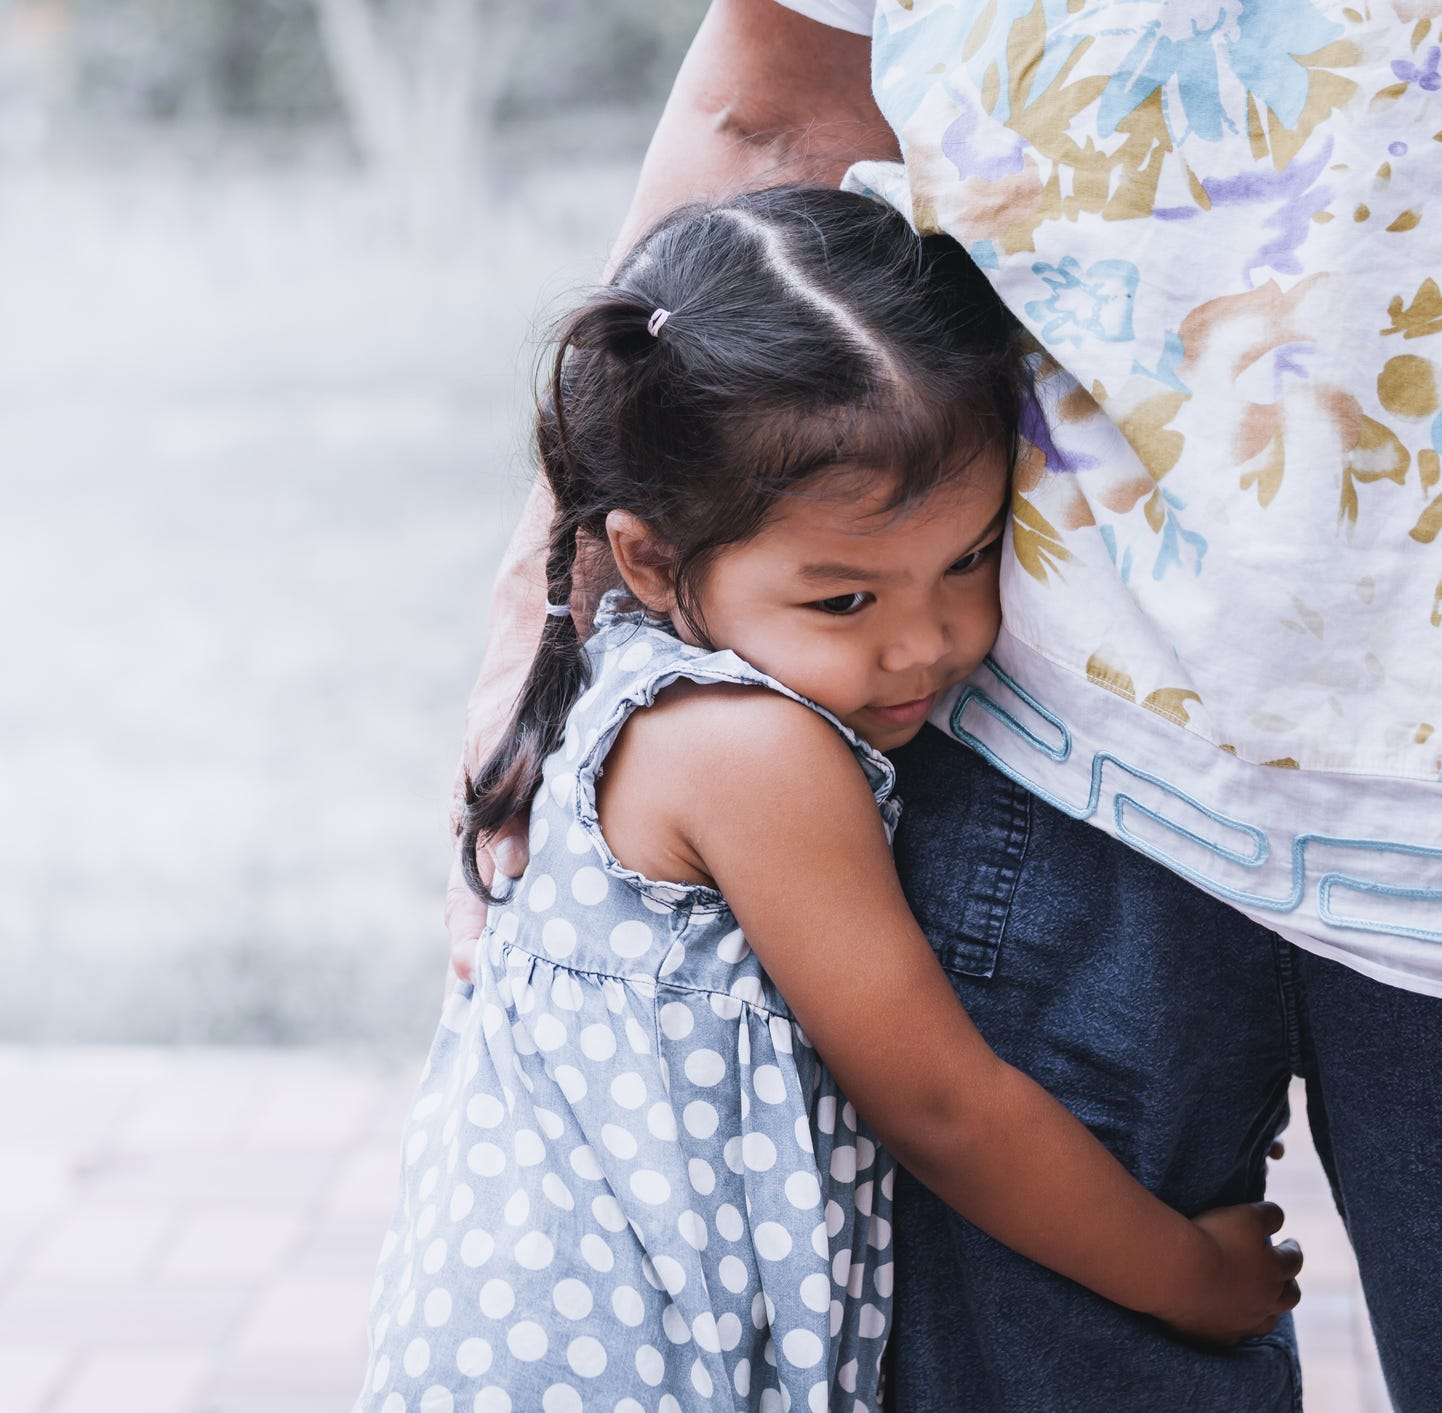 A child care expert shares four tips to help your kid deal with separation anxiety.